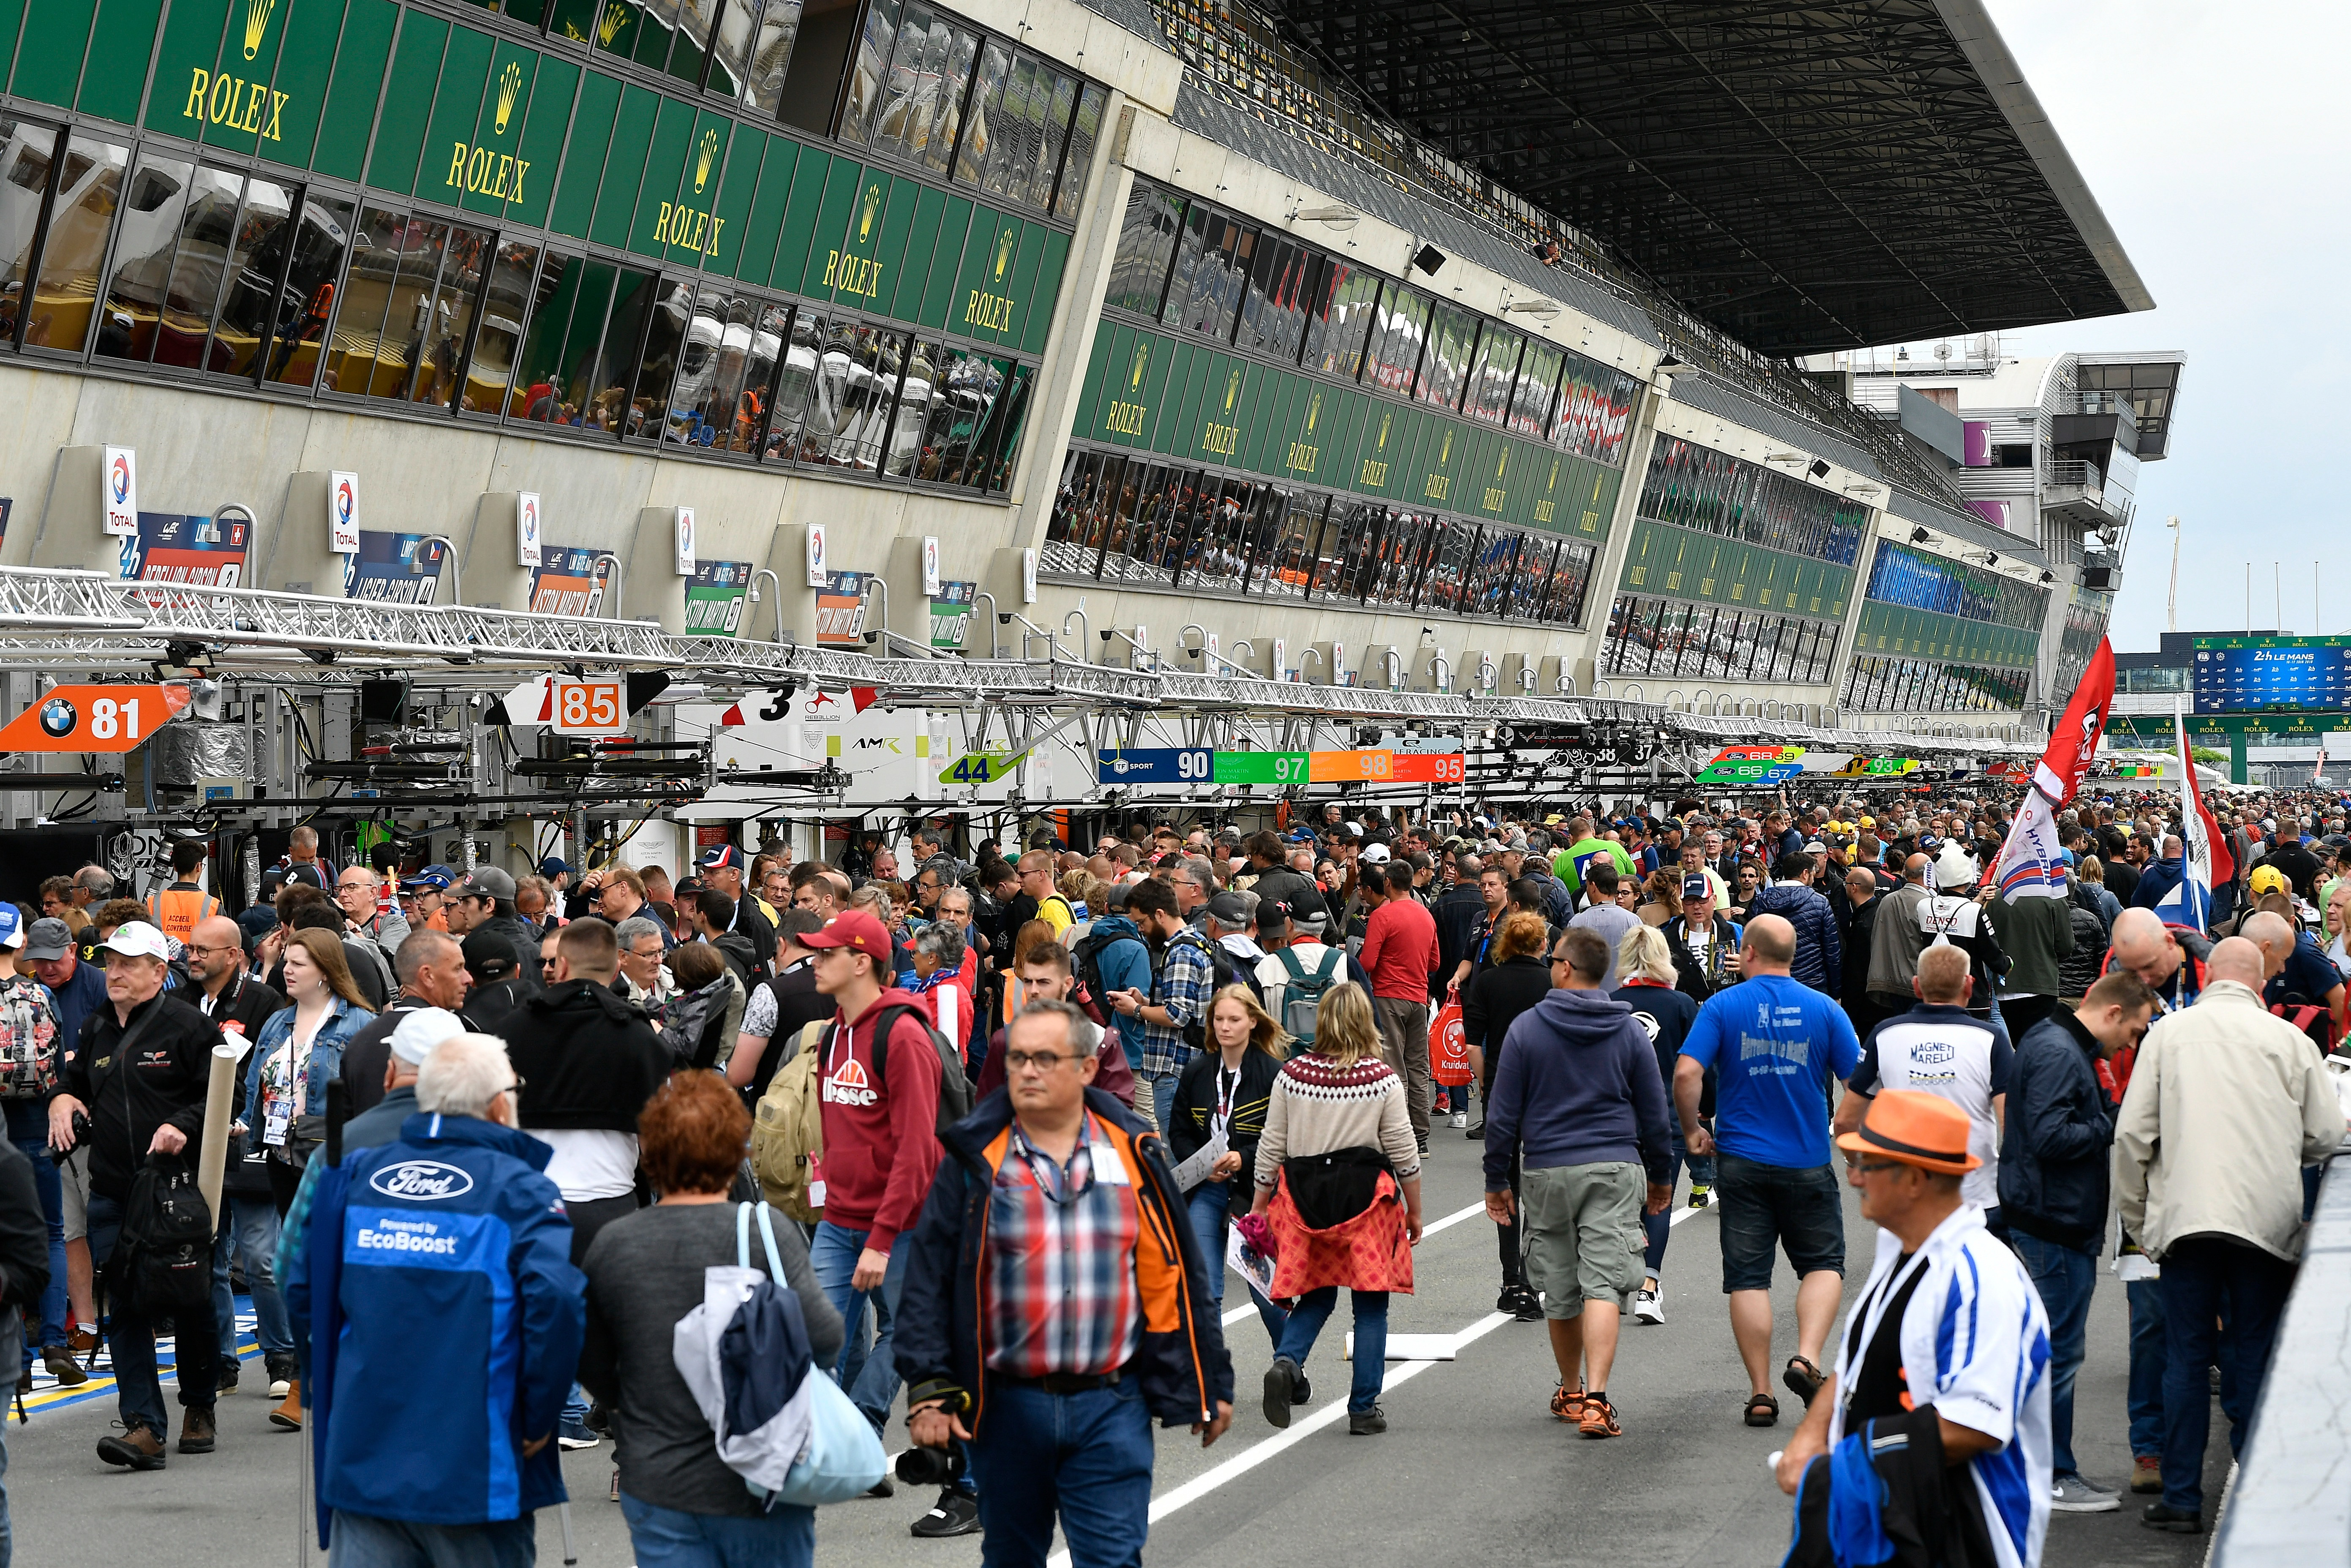 A mass gathering of fans in the Le Mans pitlane in 2018